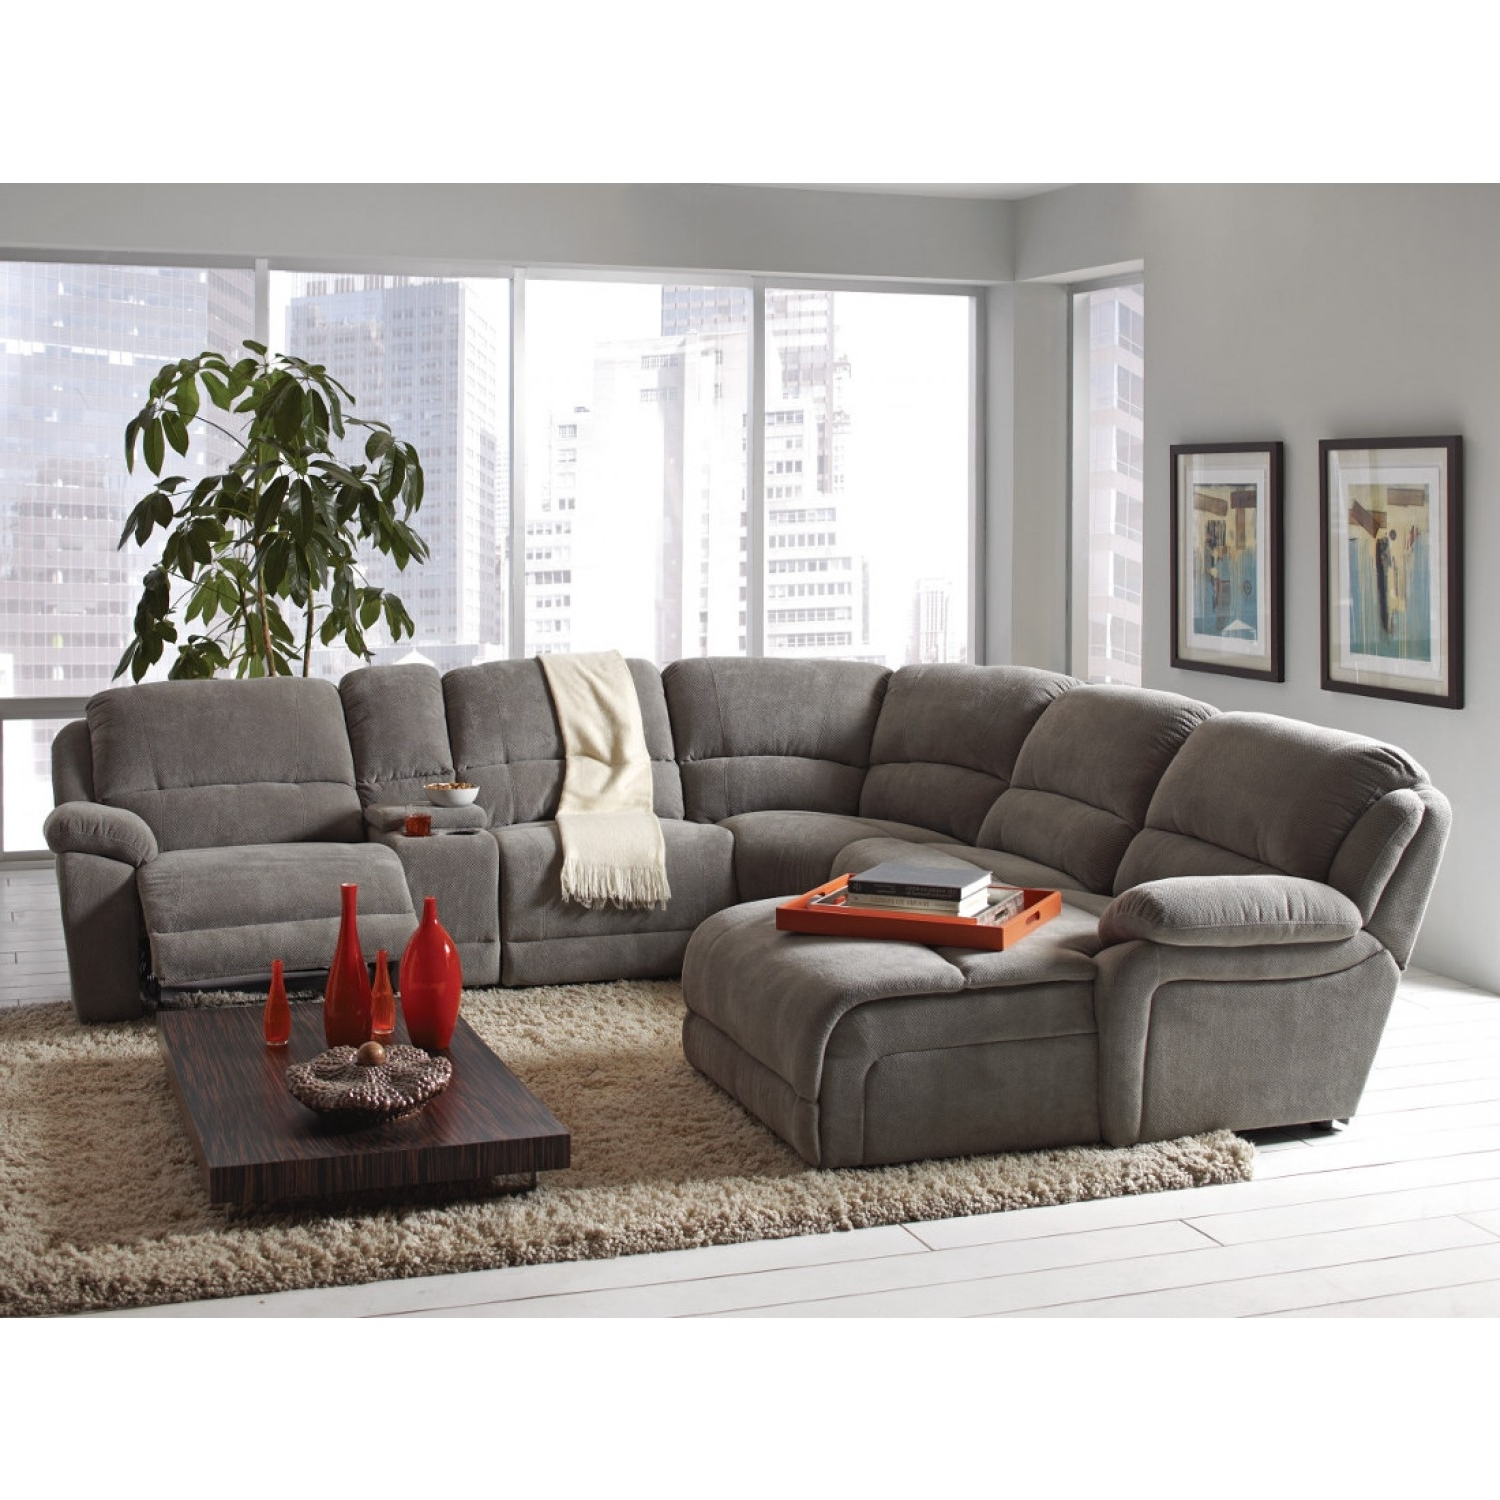 Most Recently Released Sectional Sofas That Come In Pieces Intended For Coaster Mackenzie Silver 6 Piece Reclining Sectional Sofa With (Gallery 10 of 20)